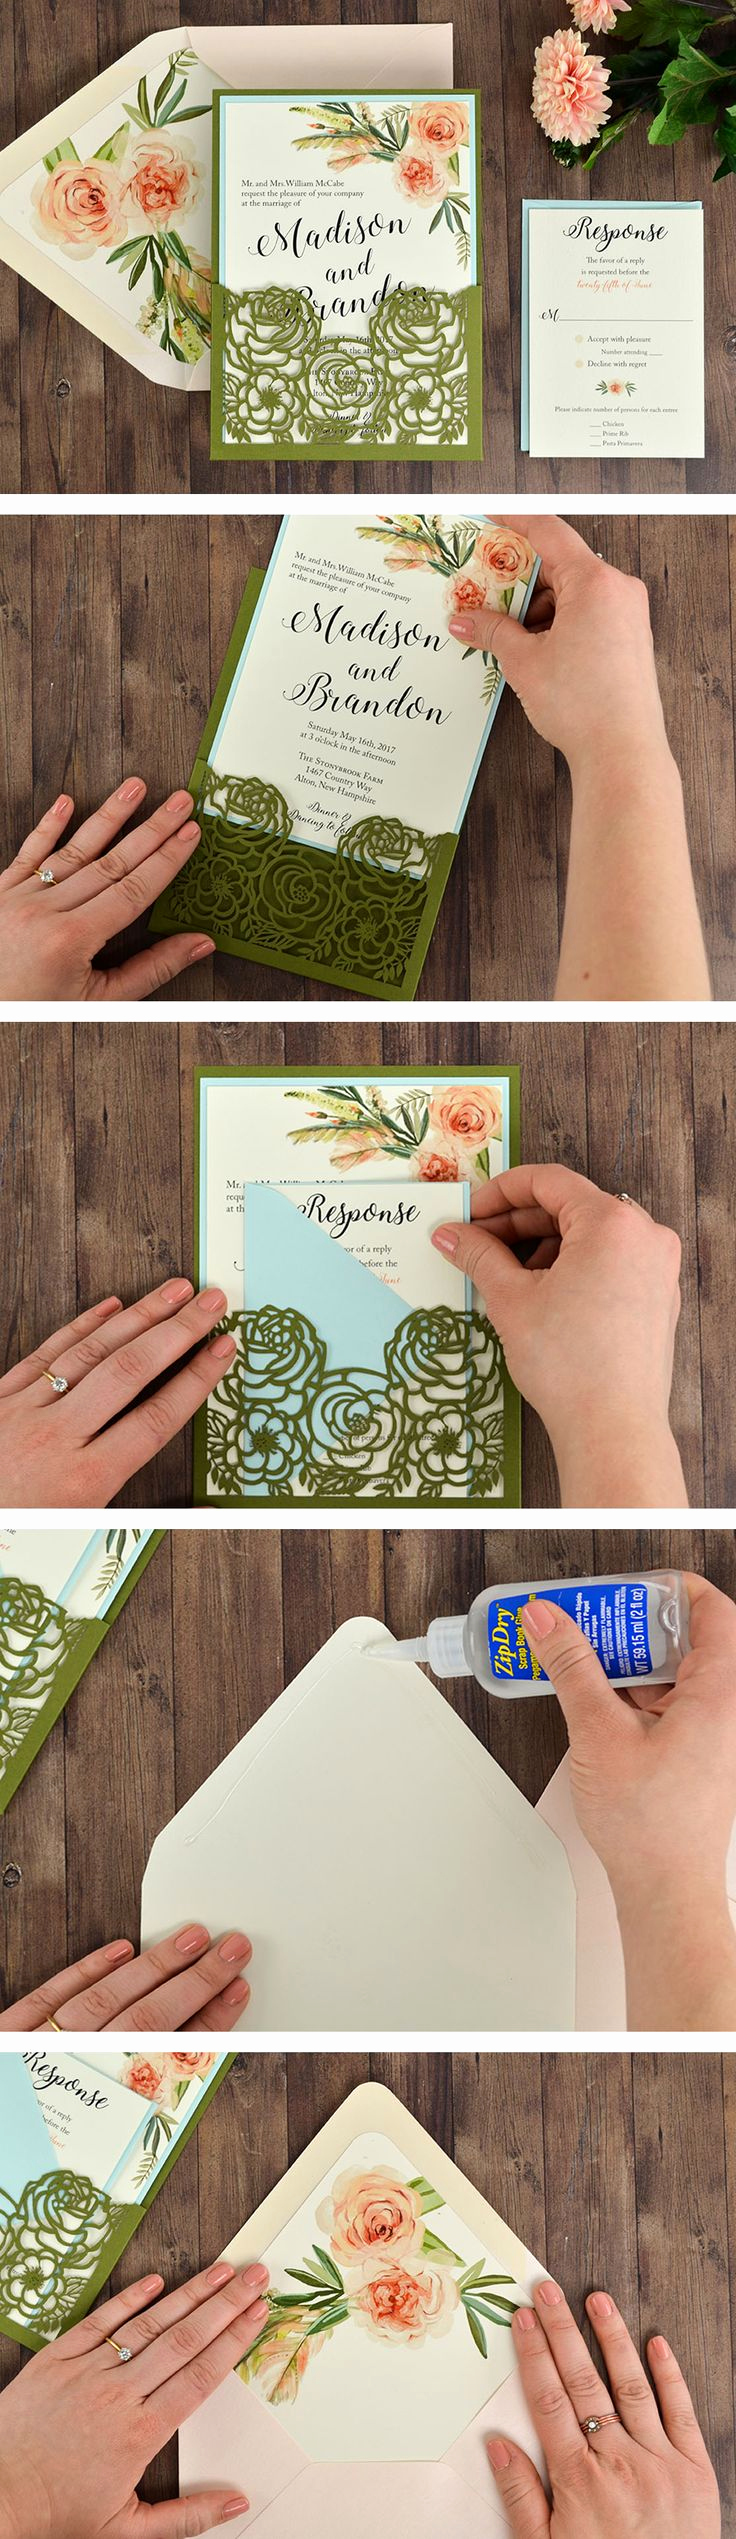 Paint Palette Invitation Template Beautiful Best 25 Invitation Templates Ideas On Pinterest